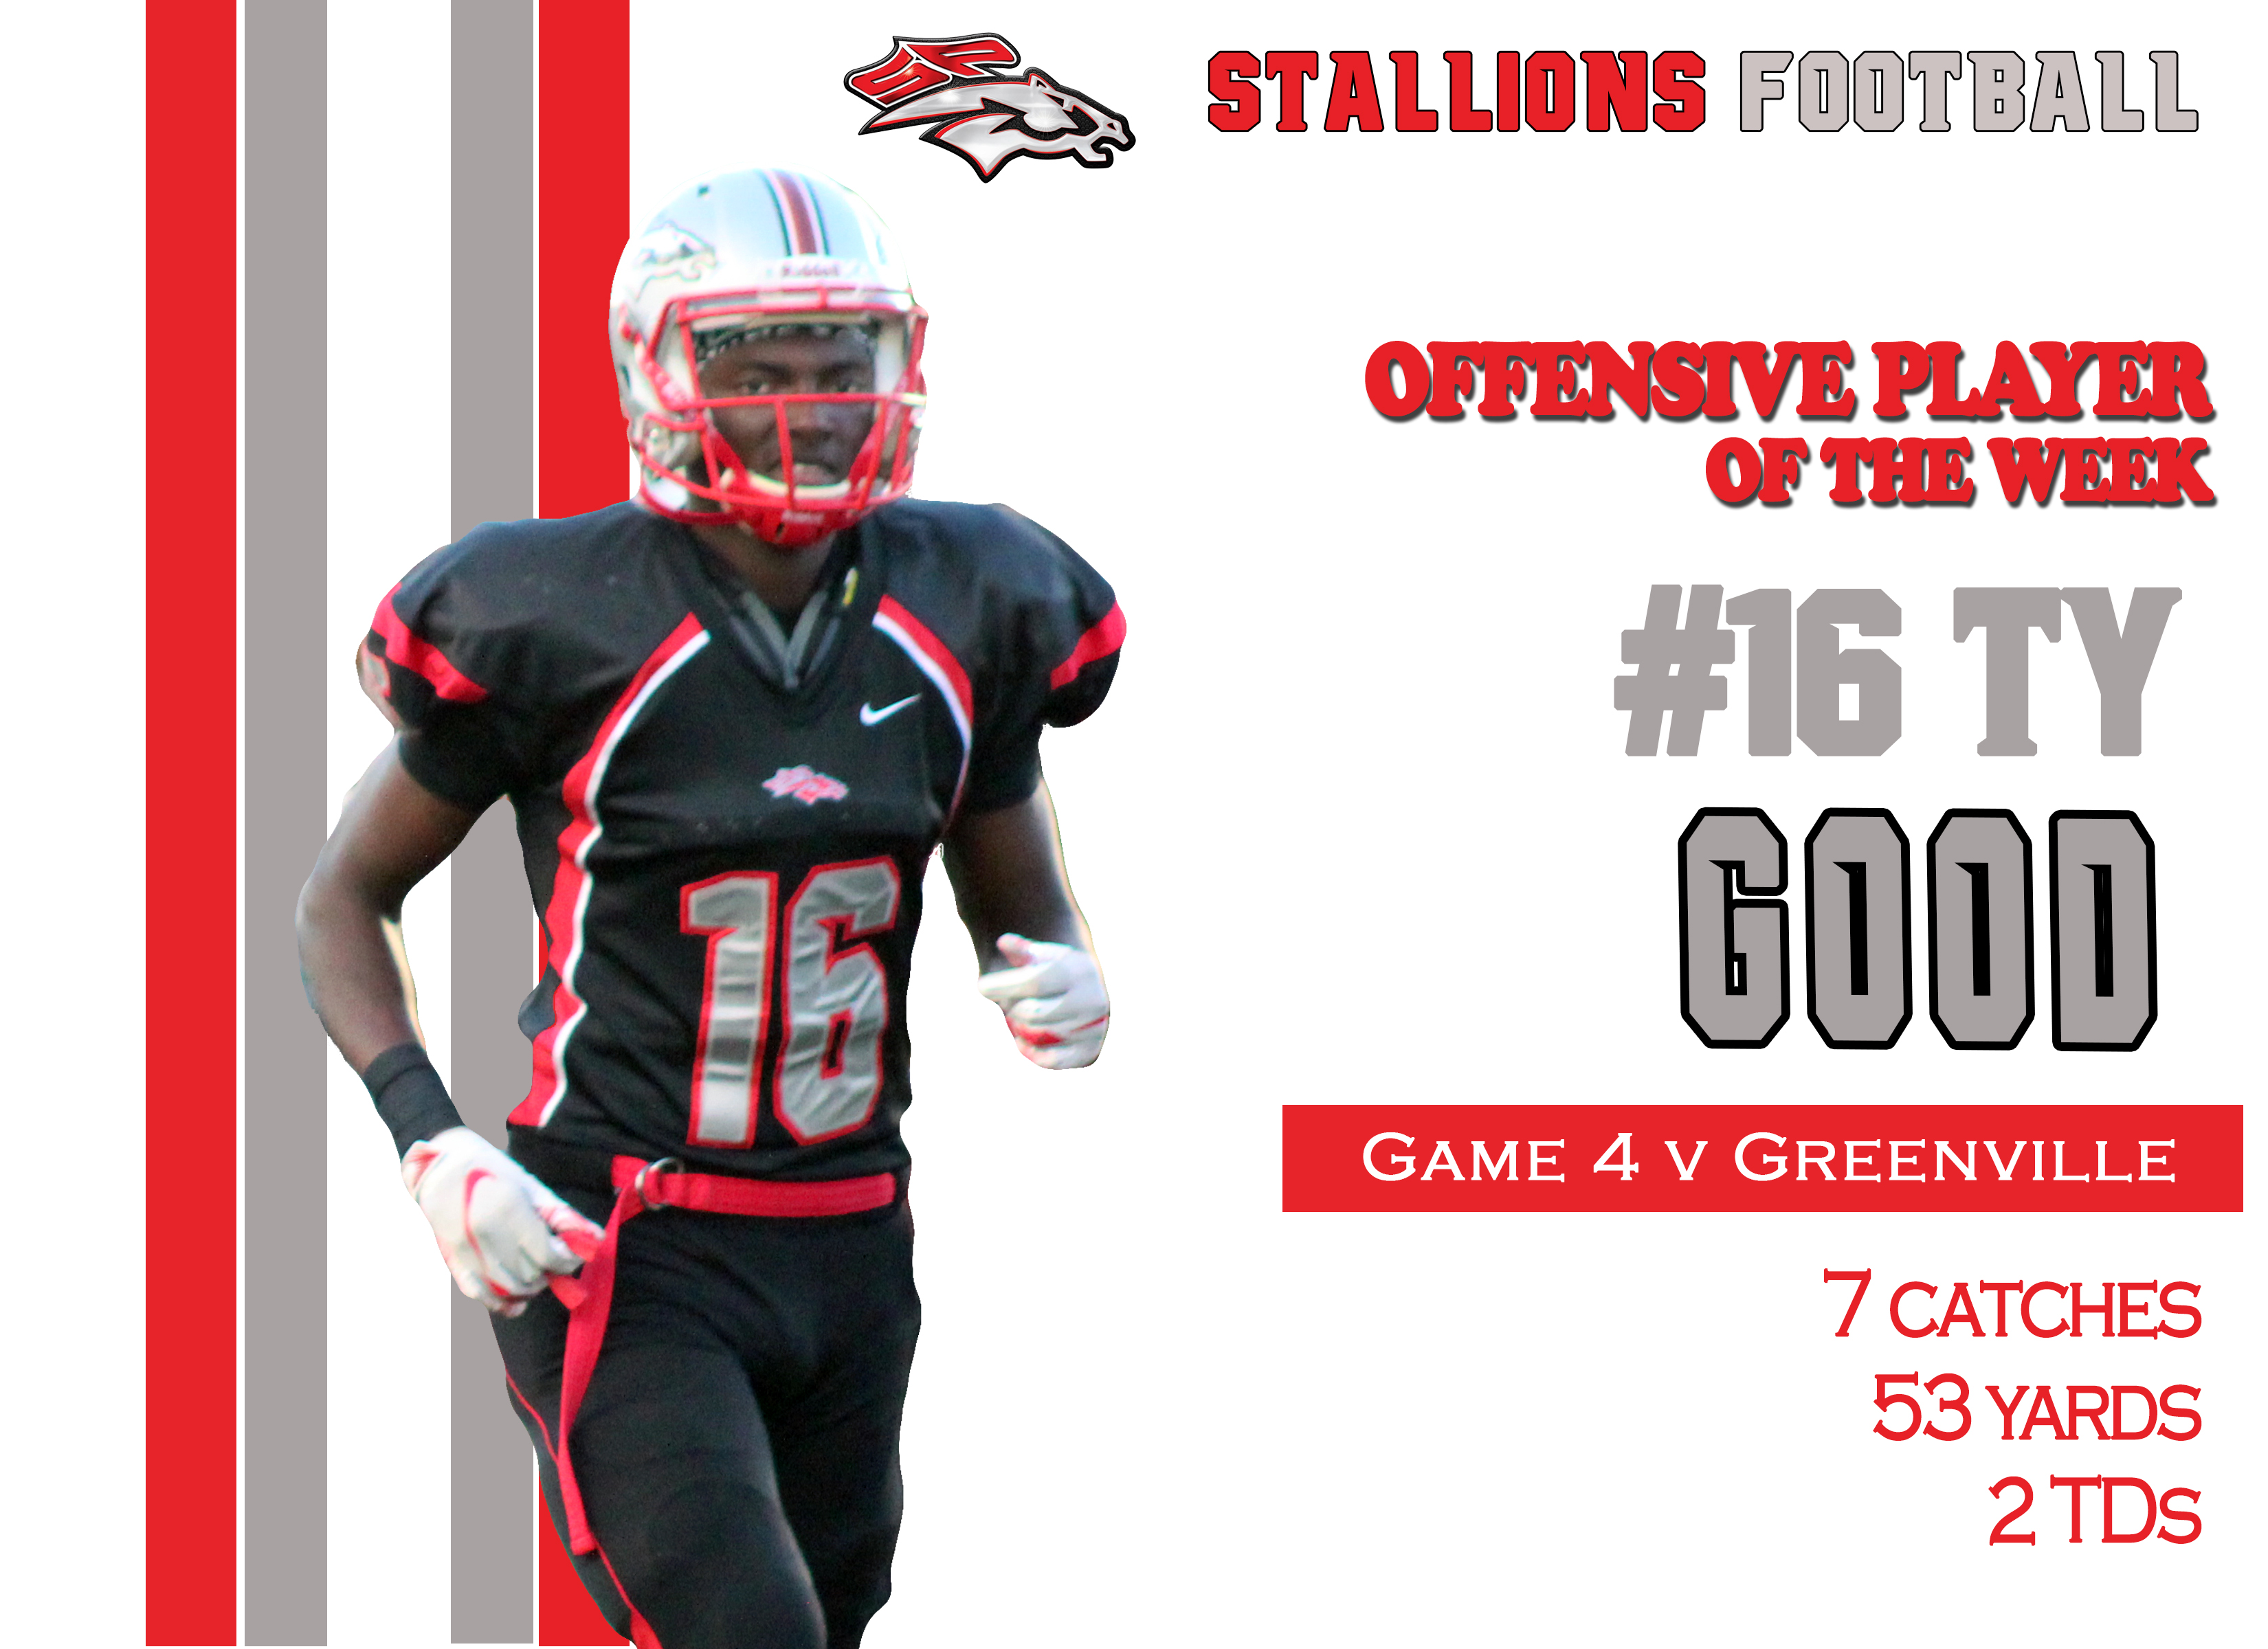 #16 Ty Good Offensive Player of the Week